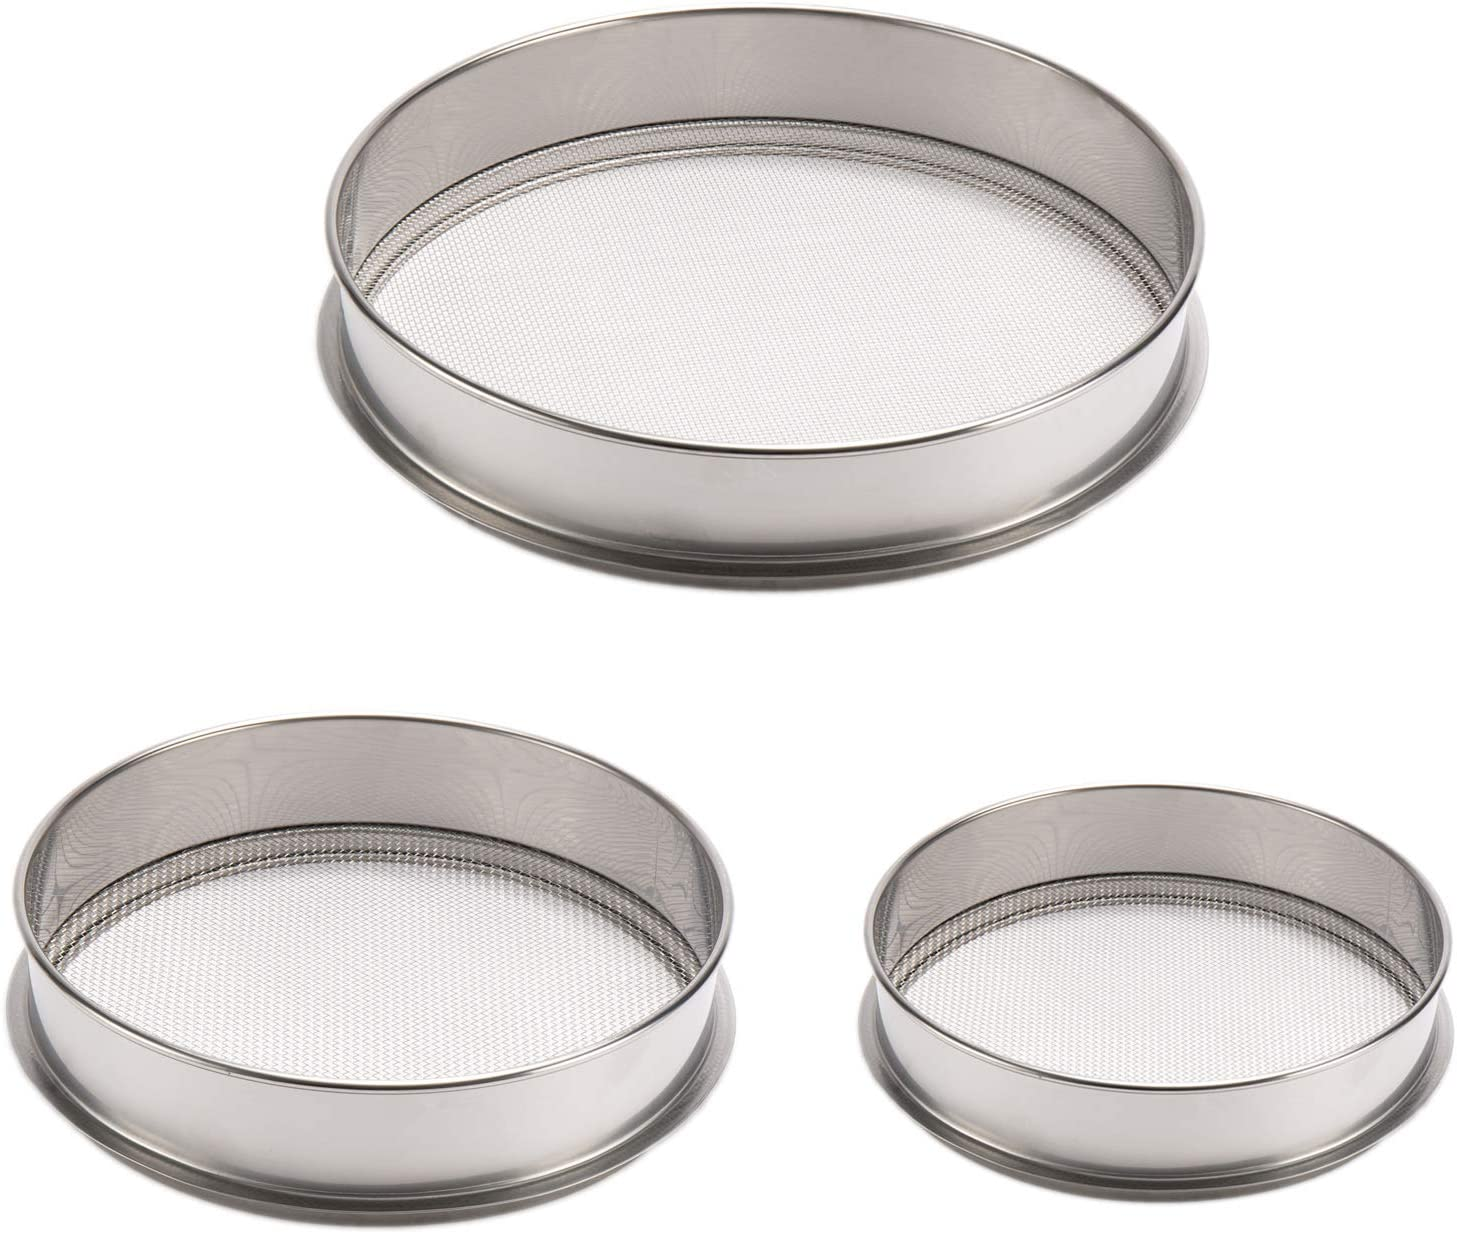 3 Pack Stainless Steel Soil Sieve Kits- 12in 1.7mm Garden Soil Screen+ 10in 2mm Round Hole Sifting Pan+ 8in 2.36mm Seeding Cultivation Tools Set Mud Screening Filter Supplies for Gardening Lawn Patio